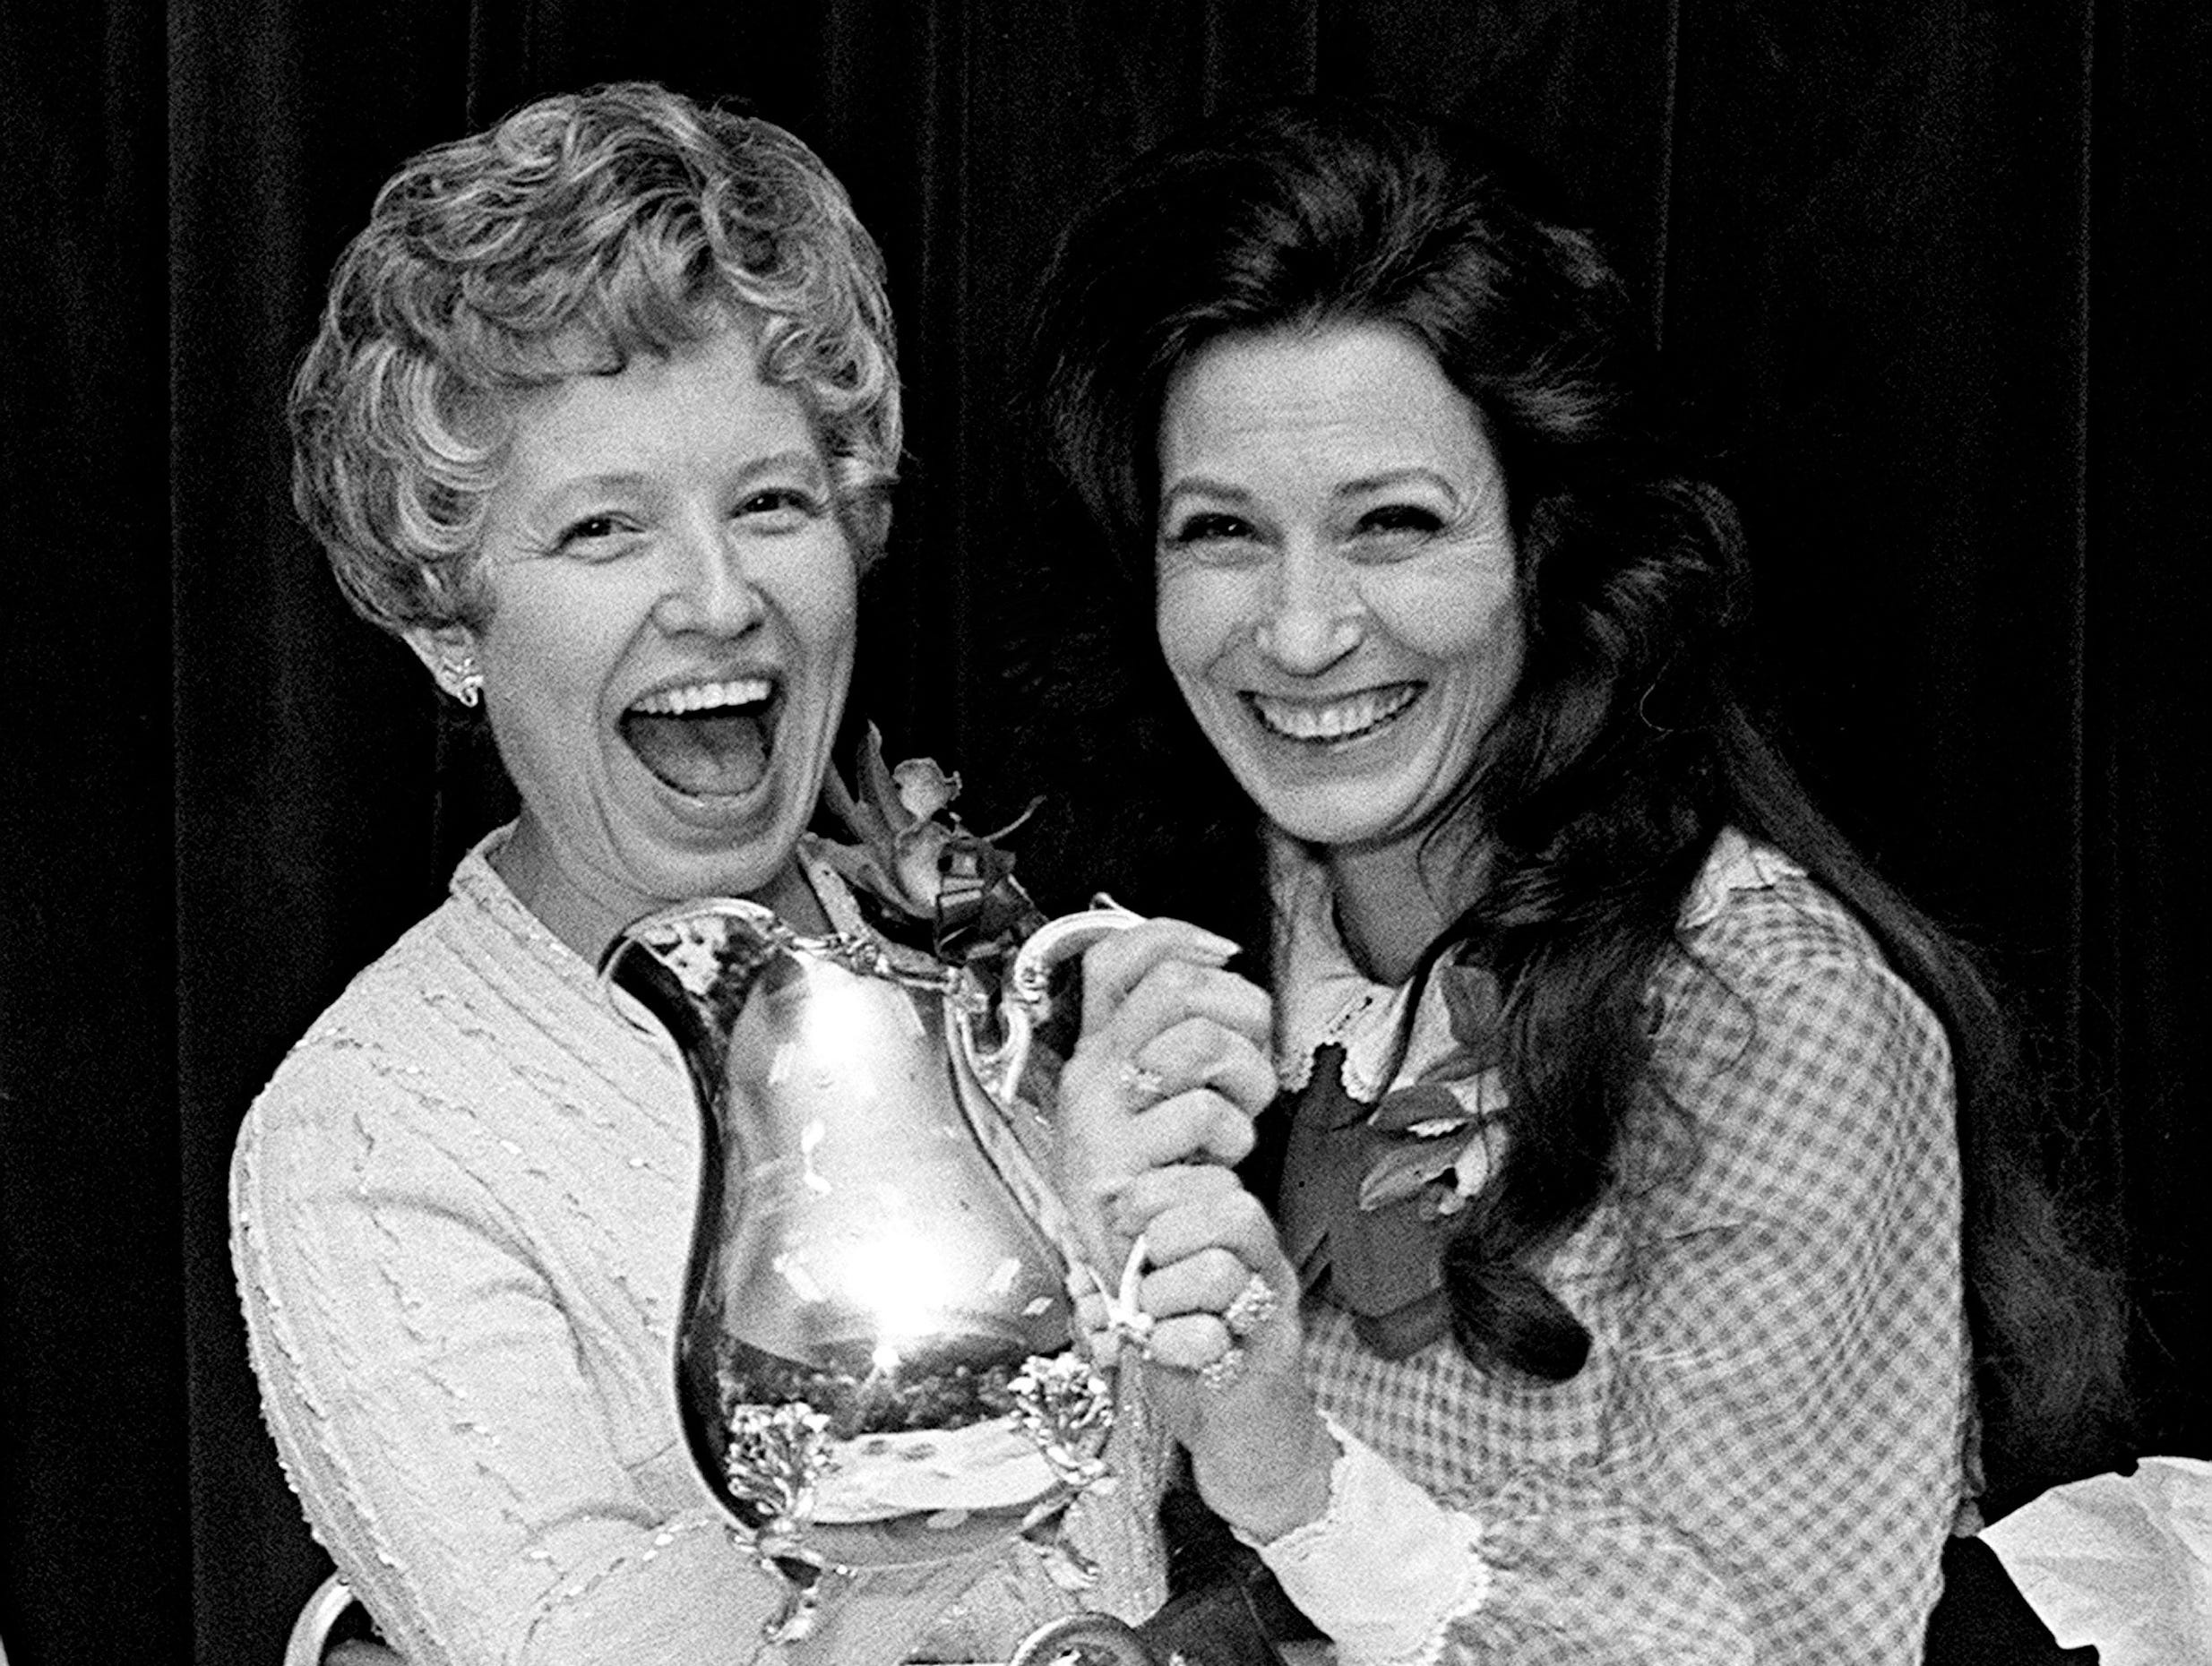 Loretta Lynn, right, one of the Women of the Year for 1972, congratulates Jane Hardaway, commissioner of personnel for Tennessee, at the banquet honoring the Women of the Year at the Woodmont Country Club on Feb. 13, 1973. Hardaway was given the first annual Bess Maddox award.